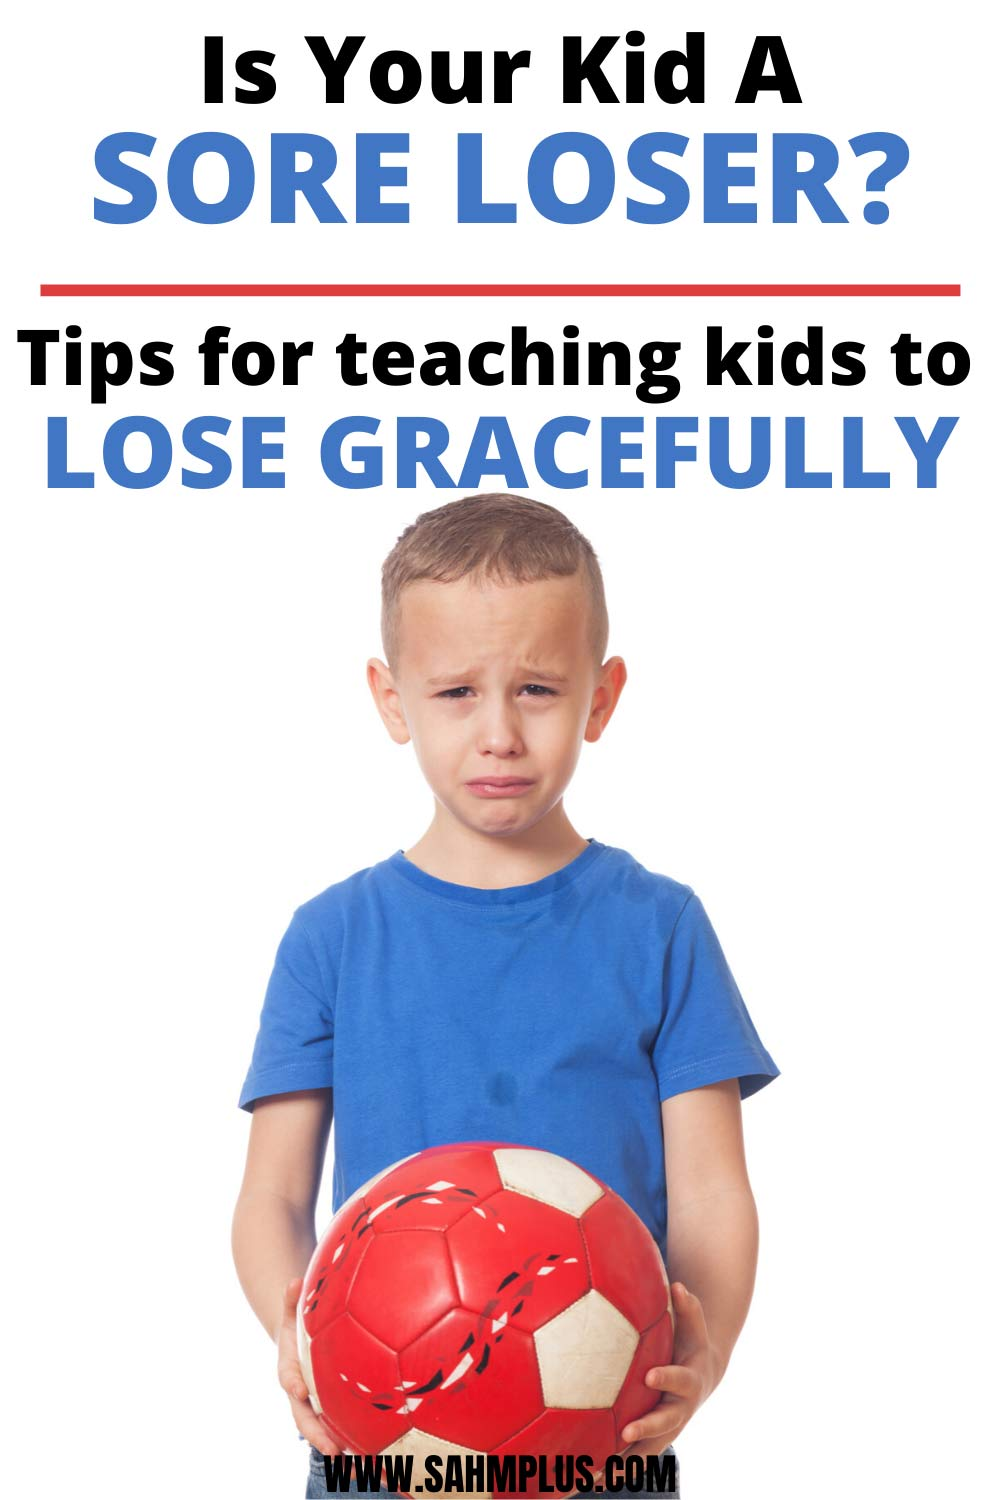 Worried your child is a sore loser?  How to help a sore loser and teach kids to lose gracefully.